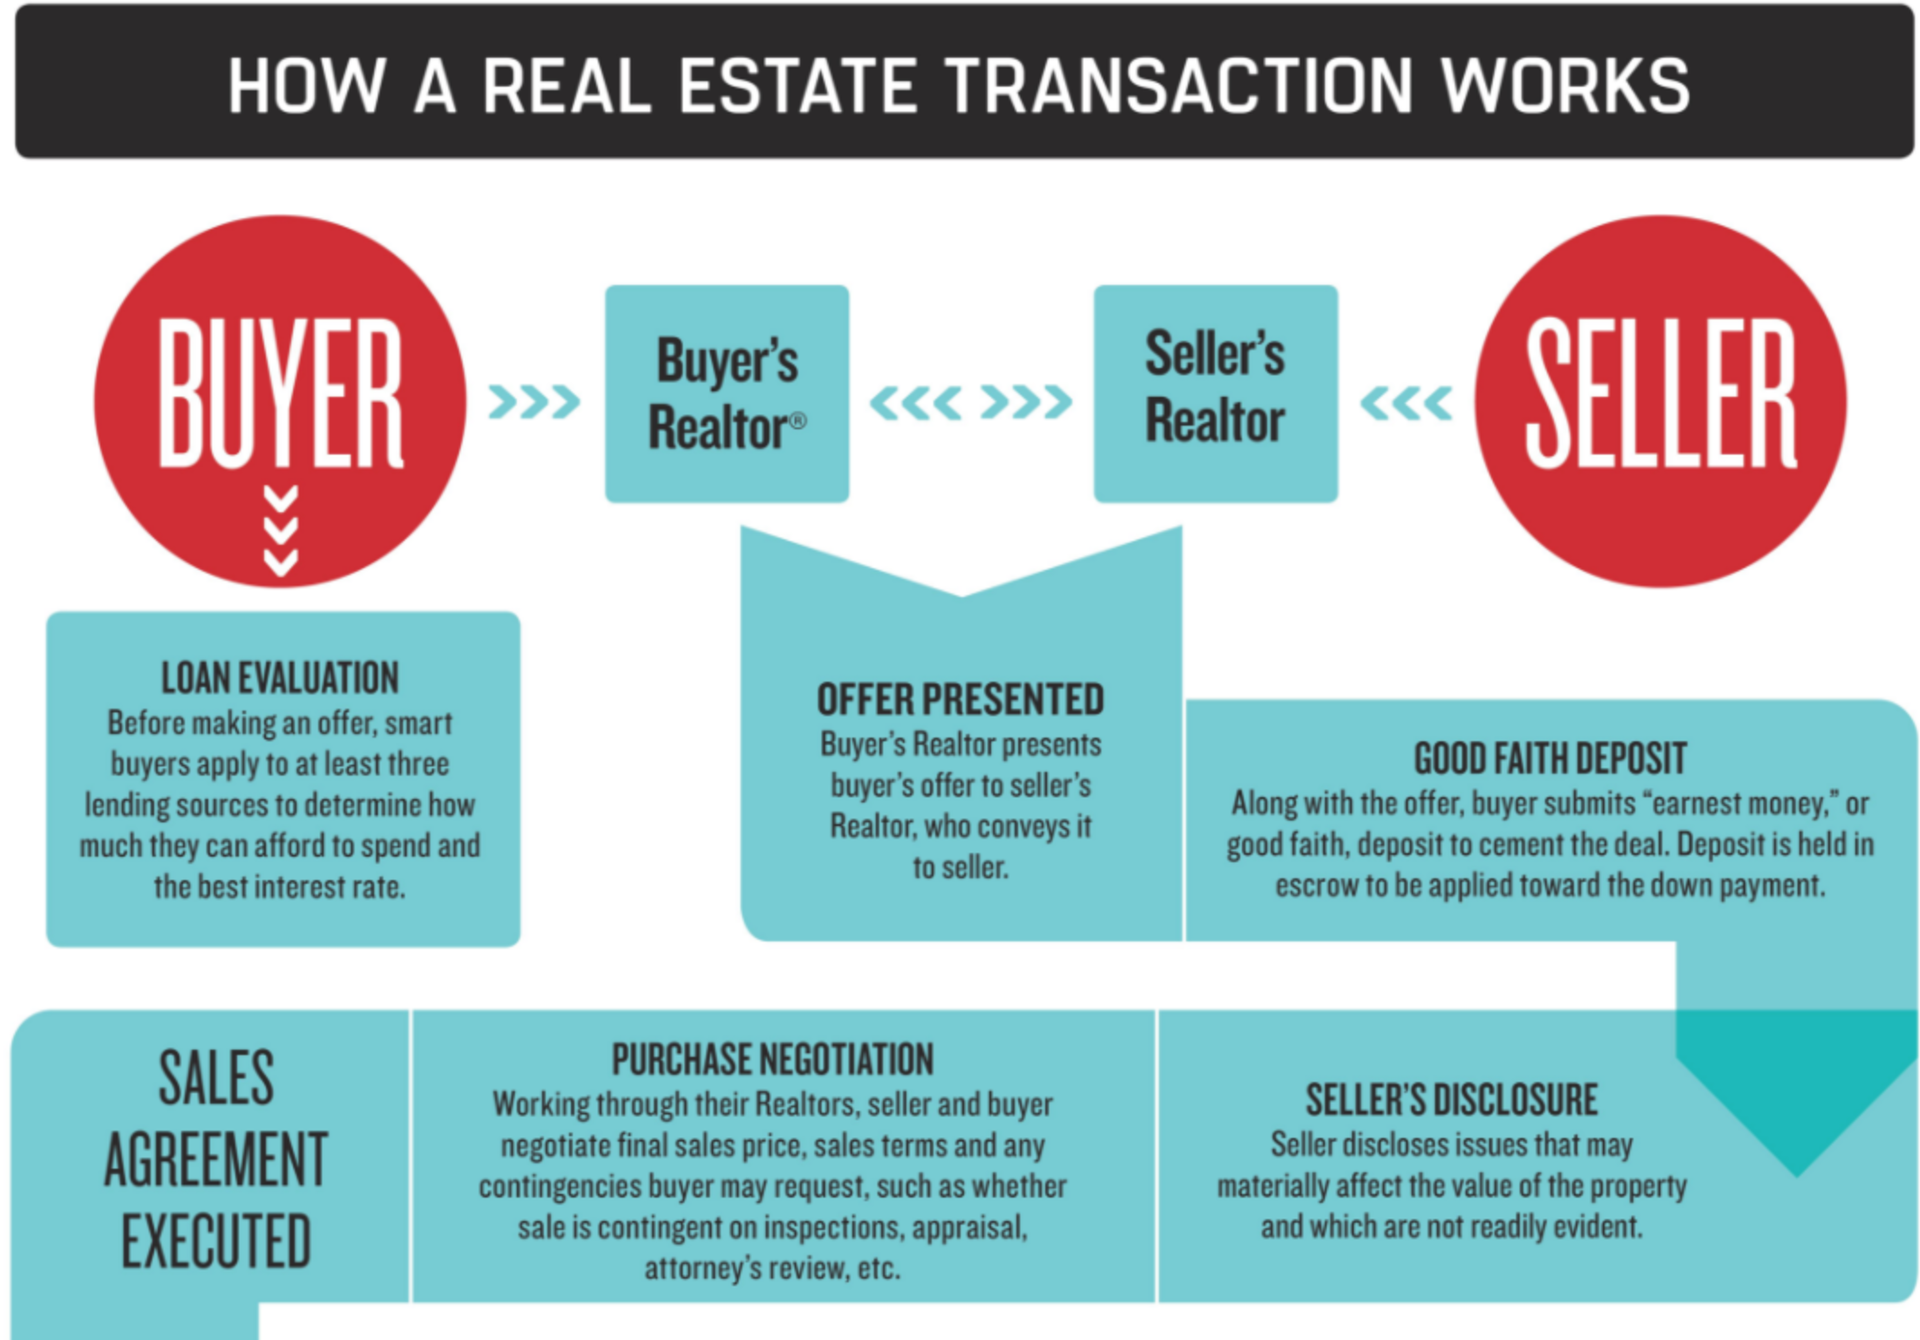 How a Real Estate Transaction Works